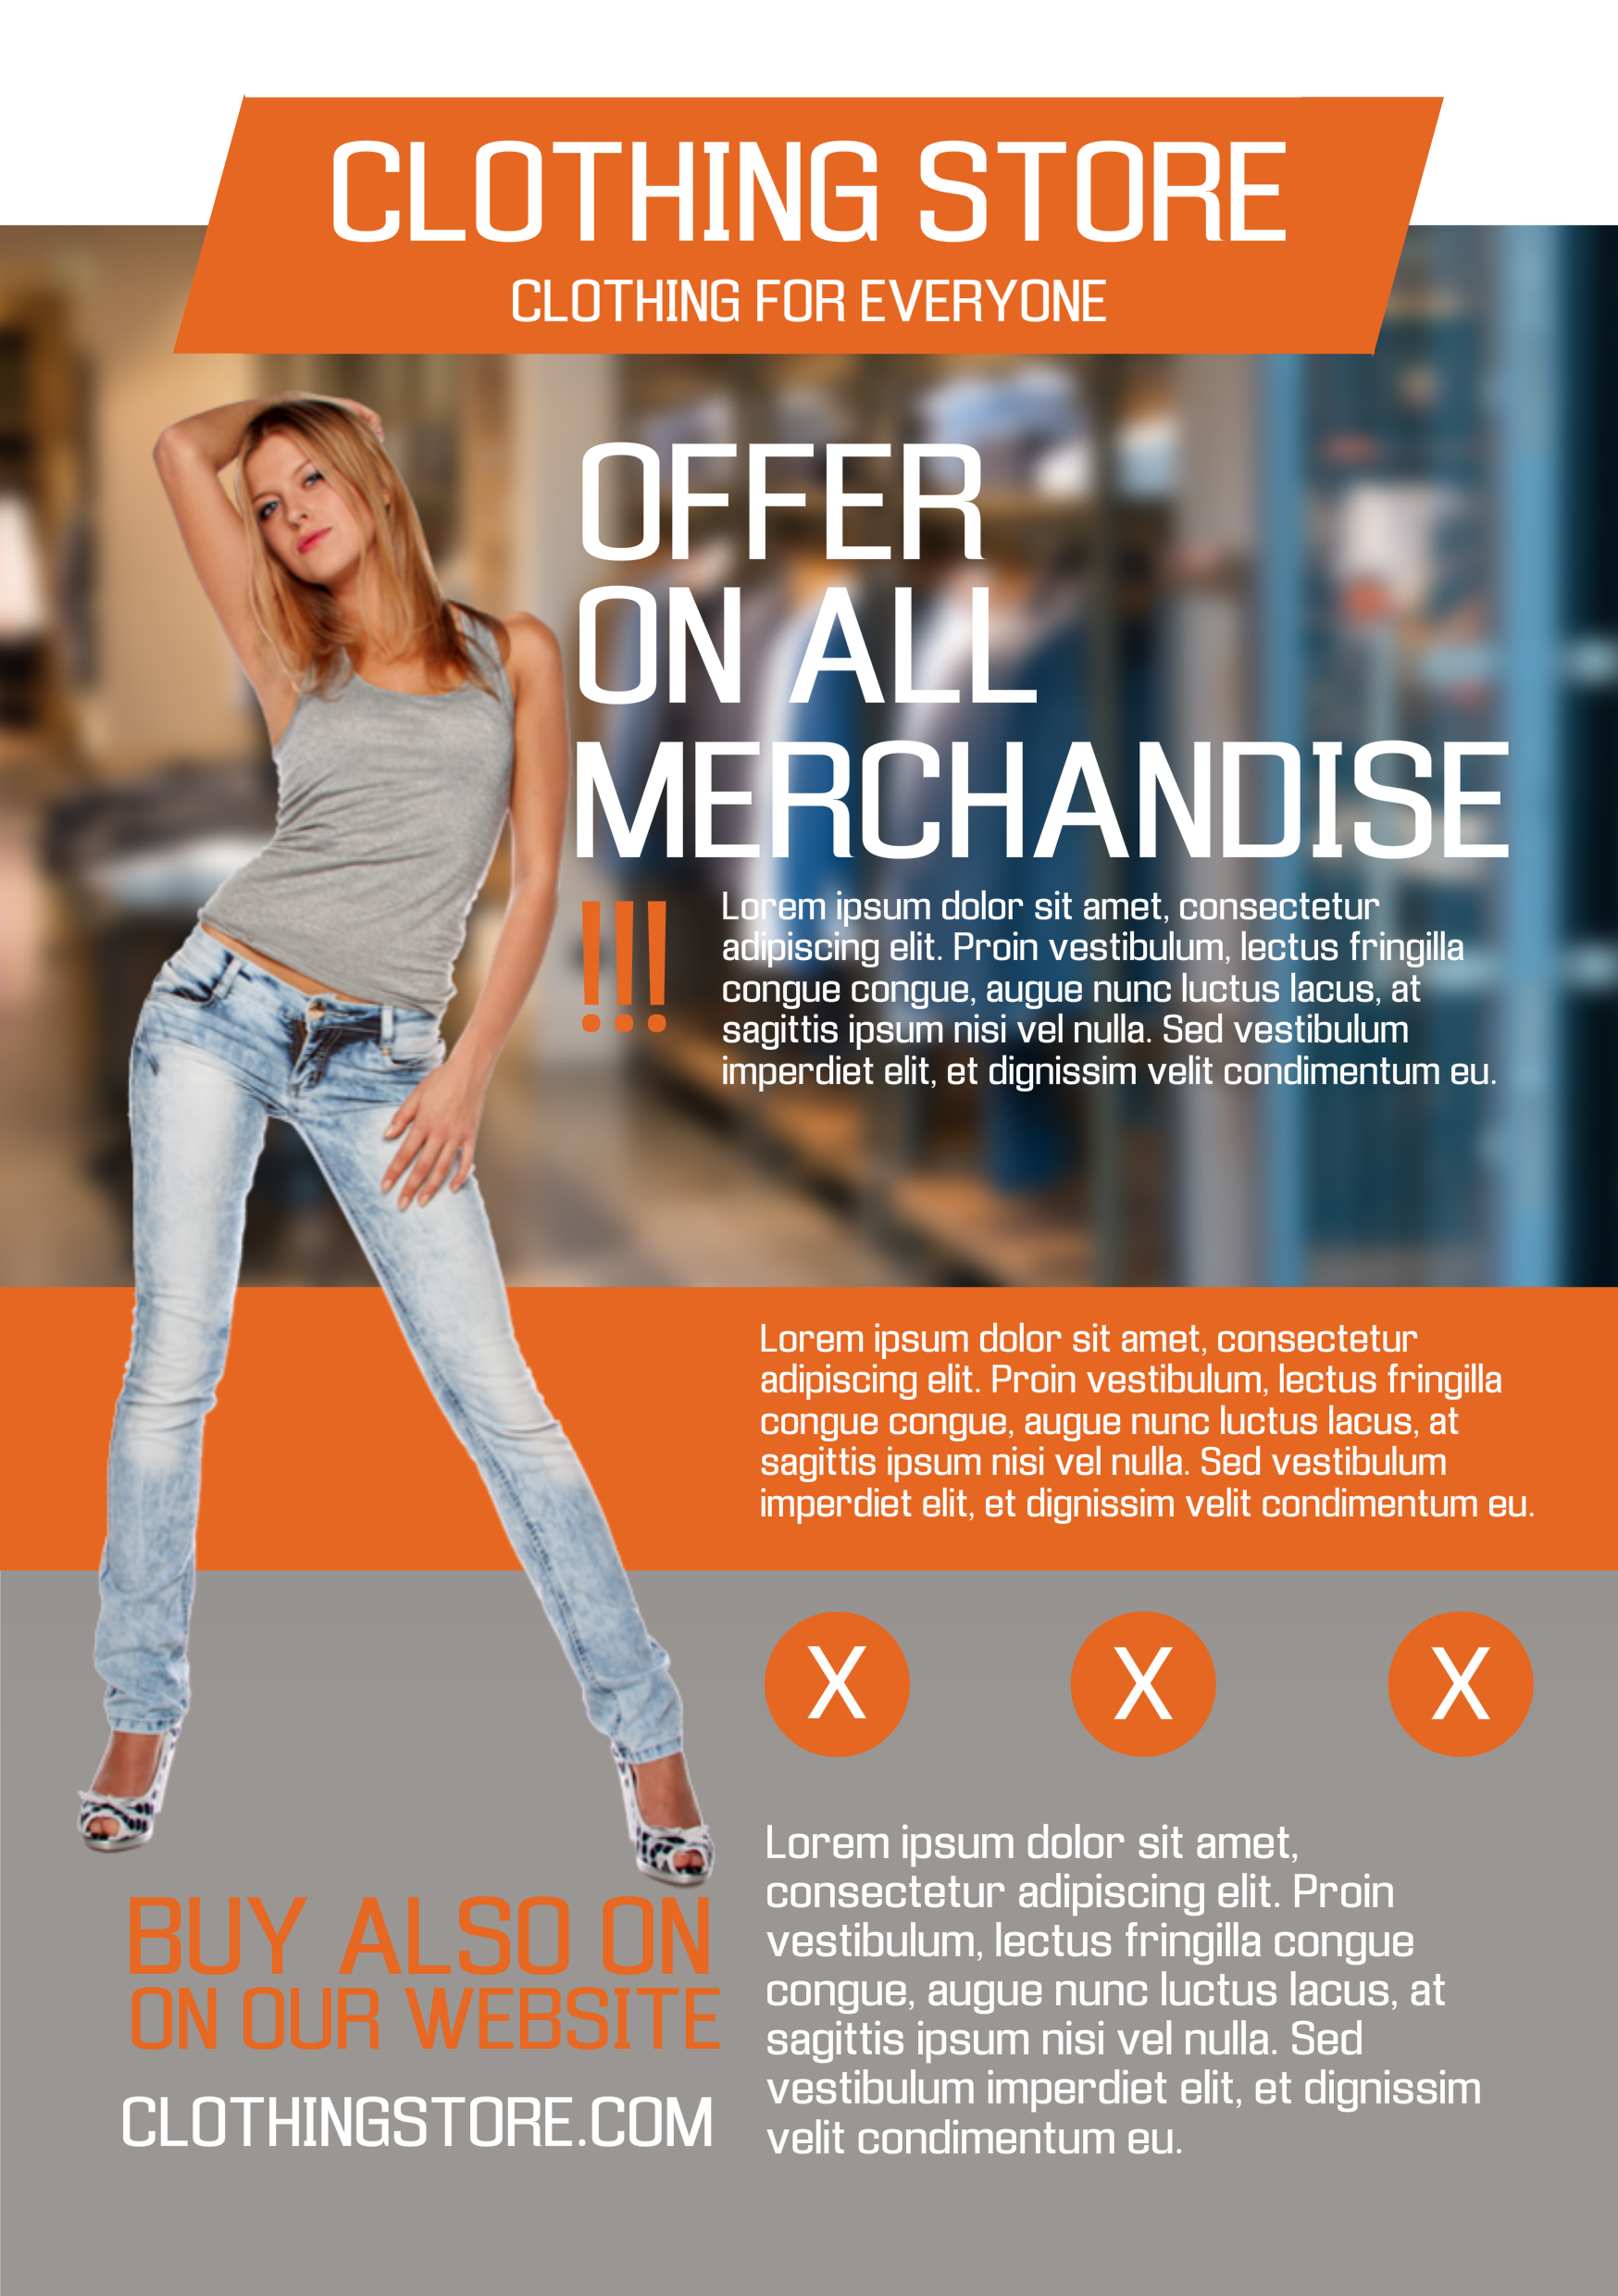 Fashion Retail A Promotional Flyer HttpPremadevideosComA